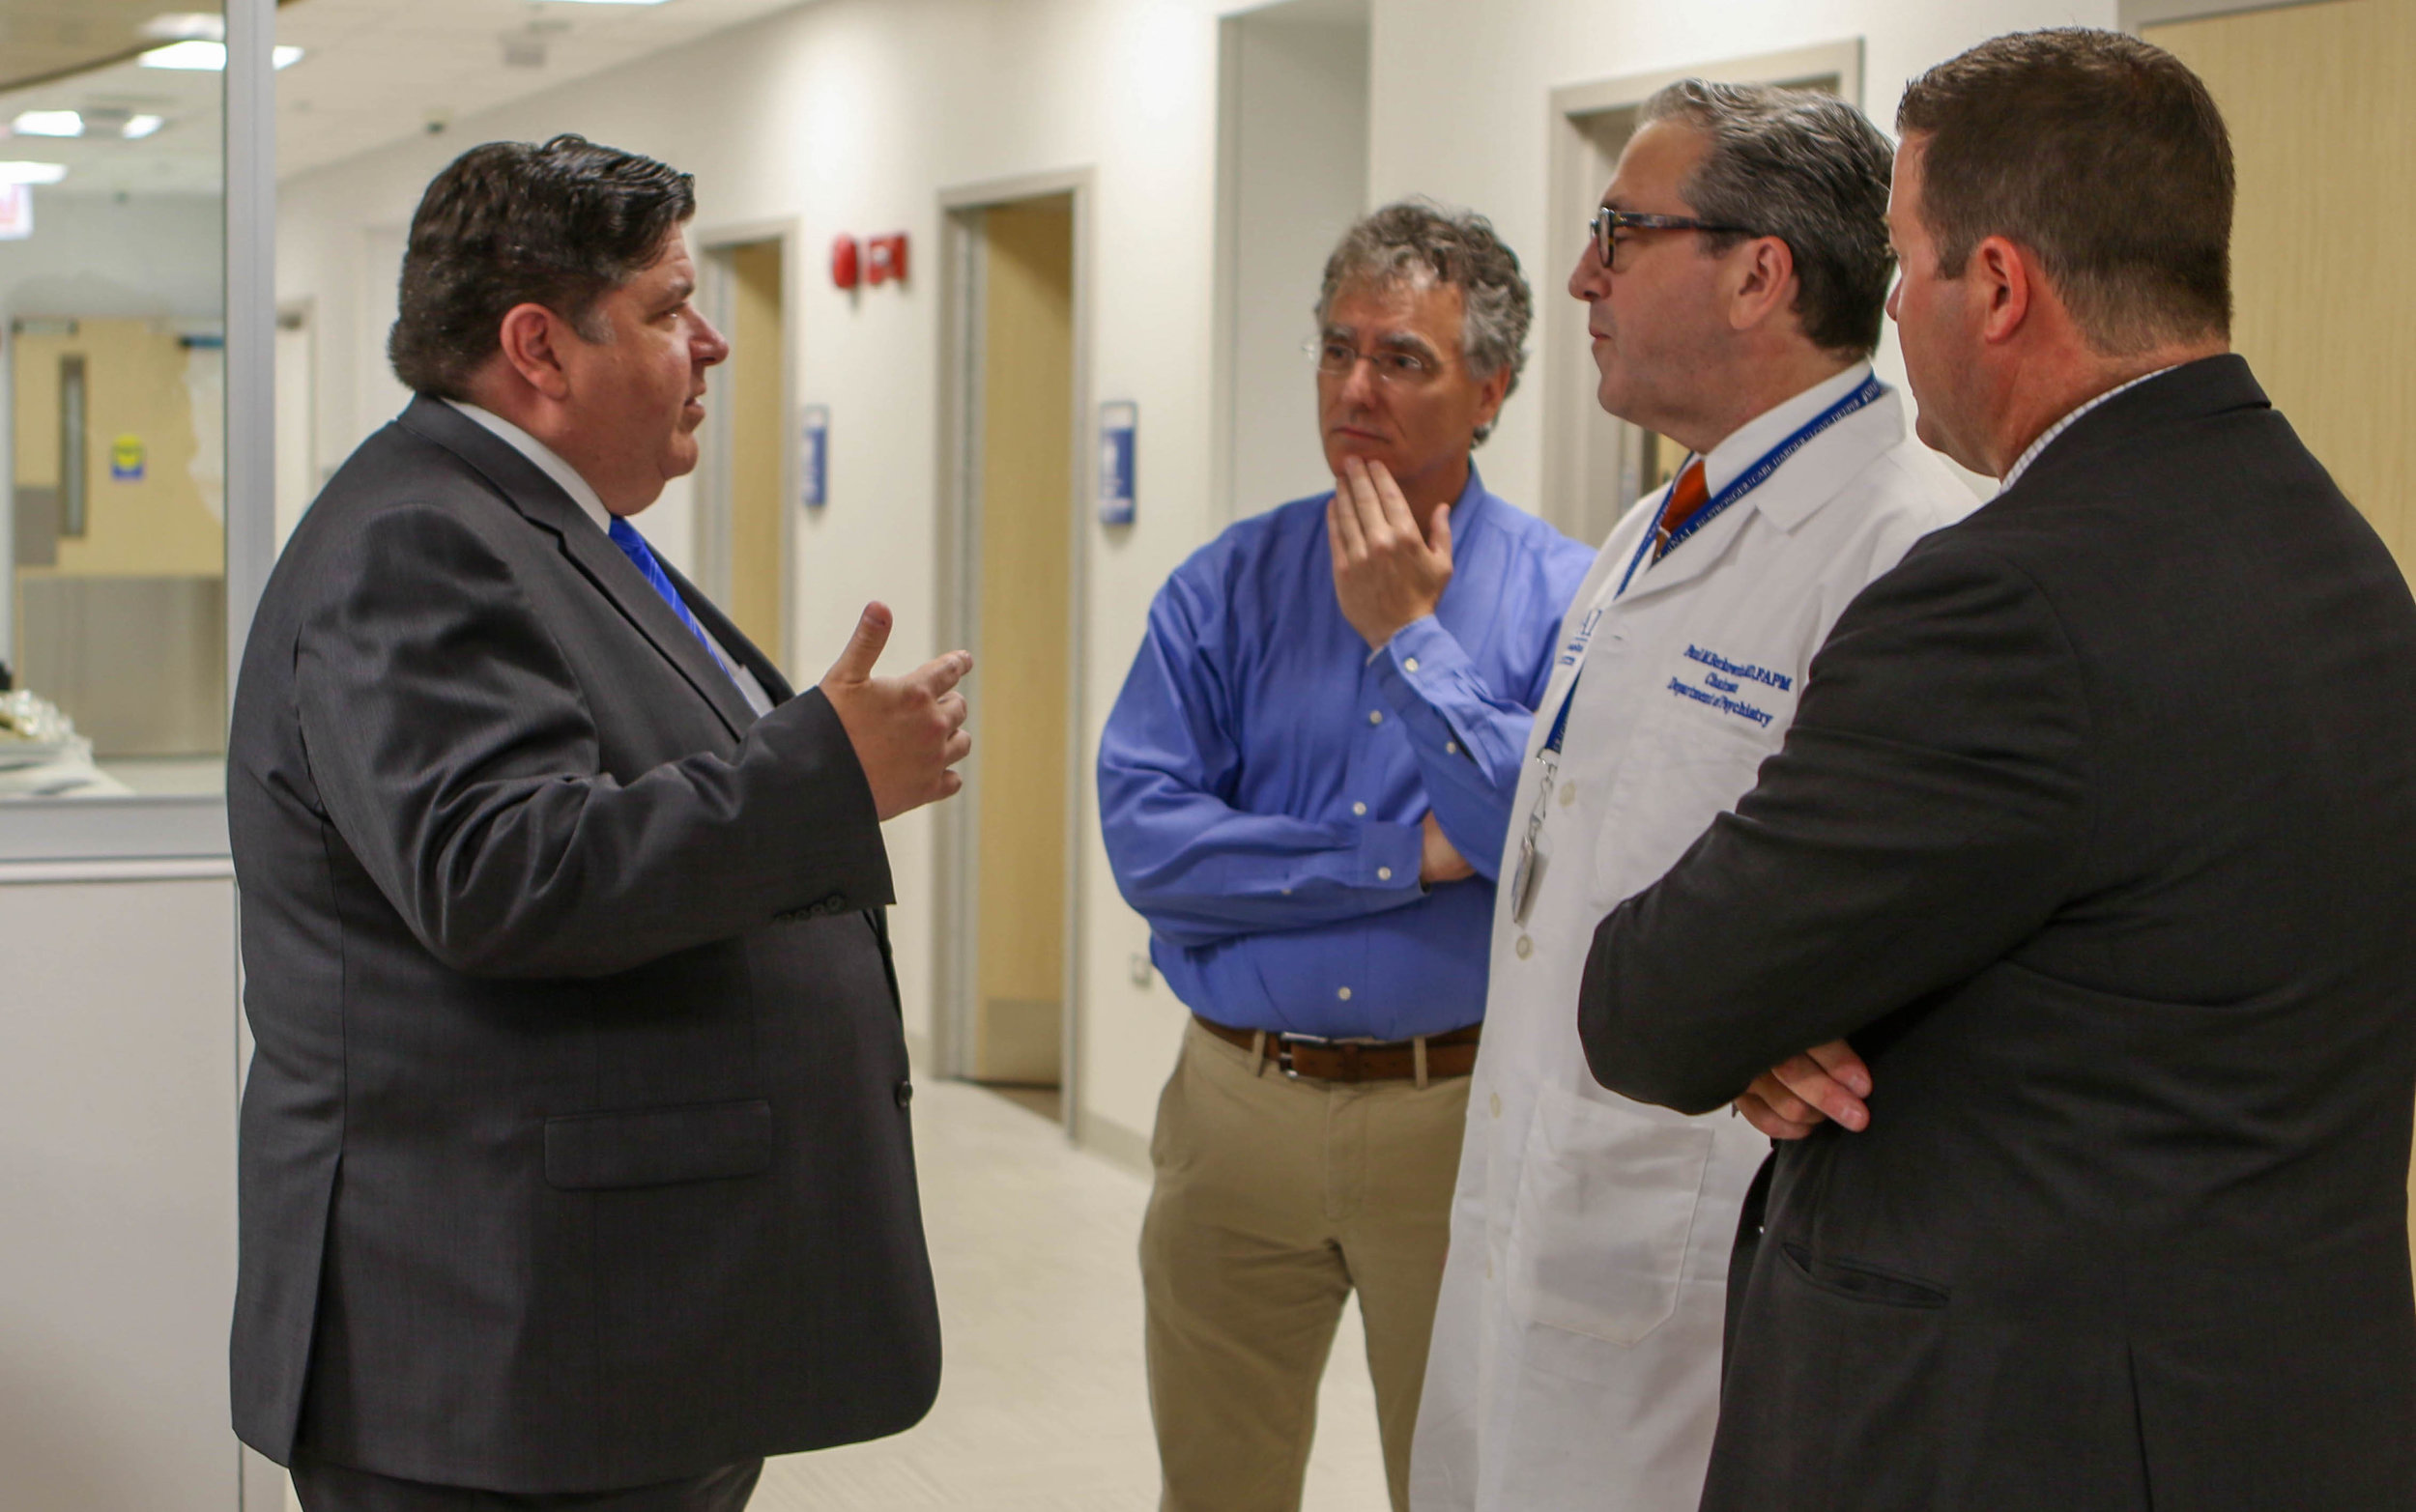 - JT assists longtime client Sinai Health System with the ribbon cutting for its Crisis Stabilization Unit (CSU)